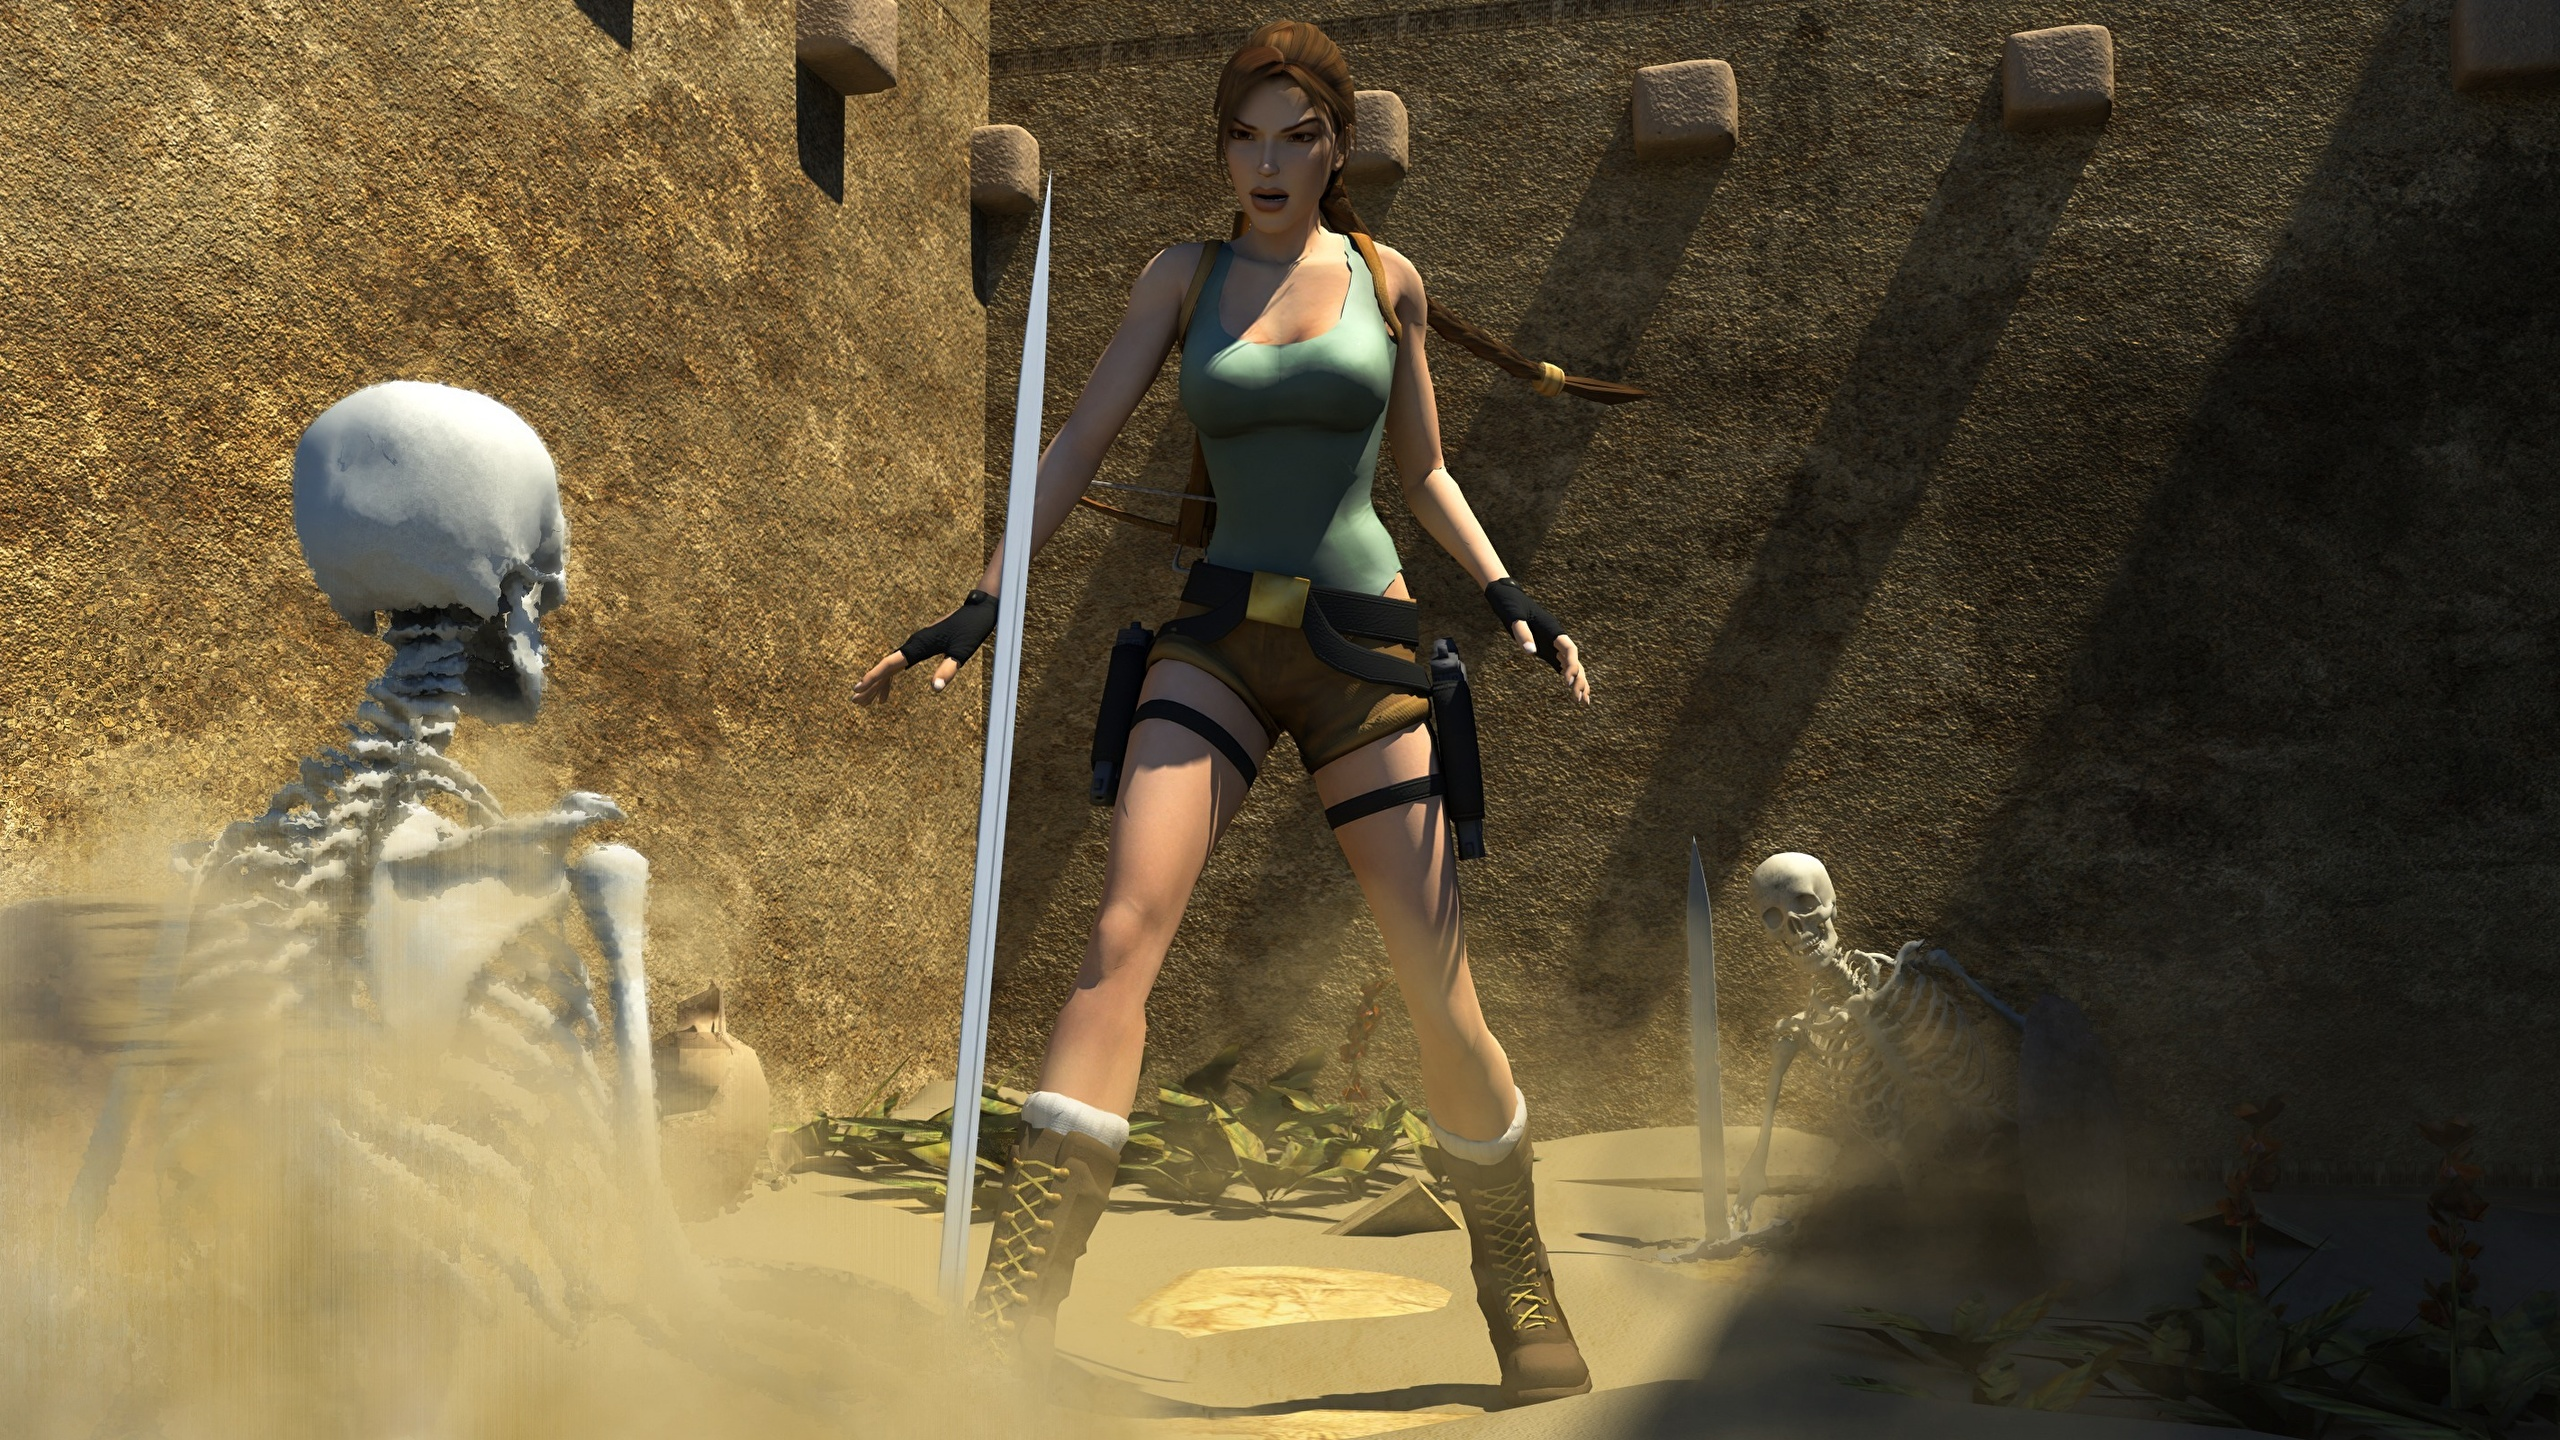 Tomb raider fucked by monster hentia boob